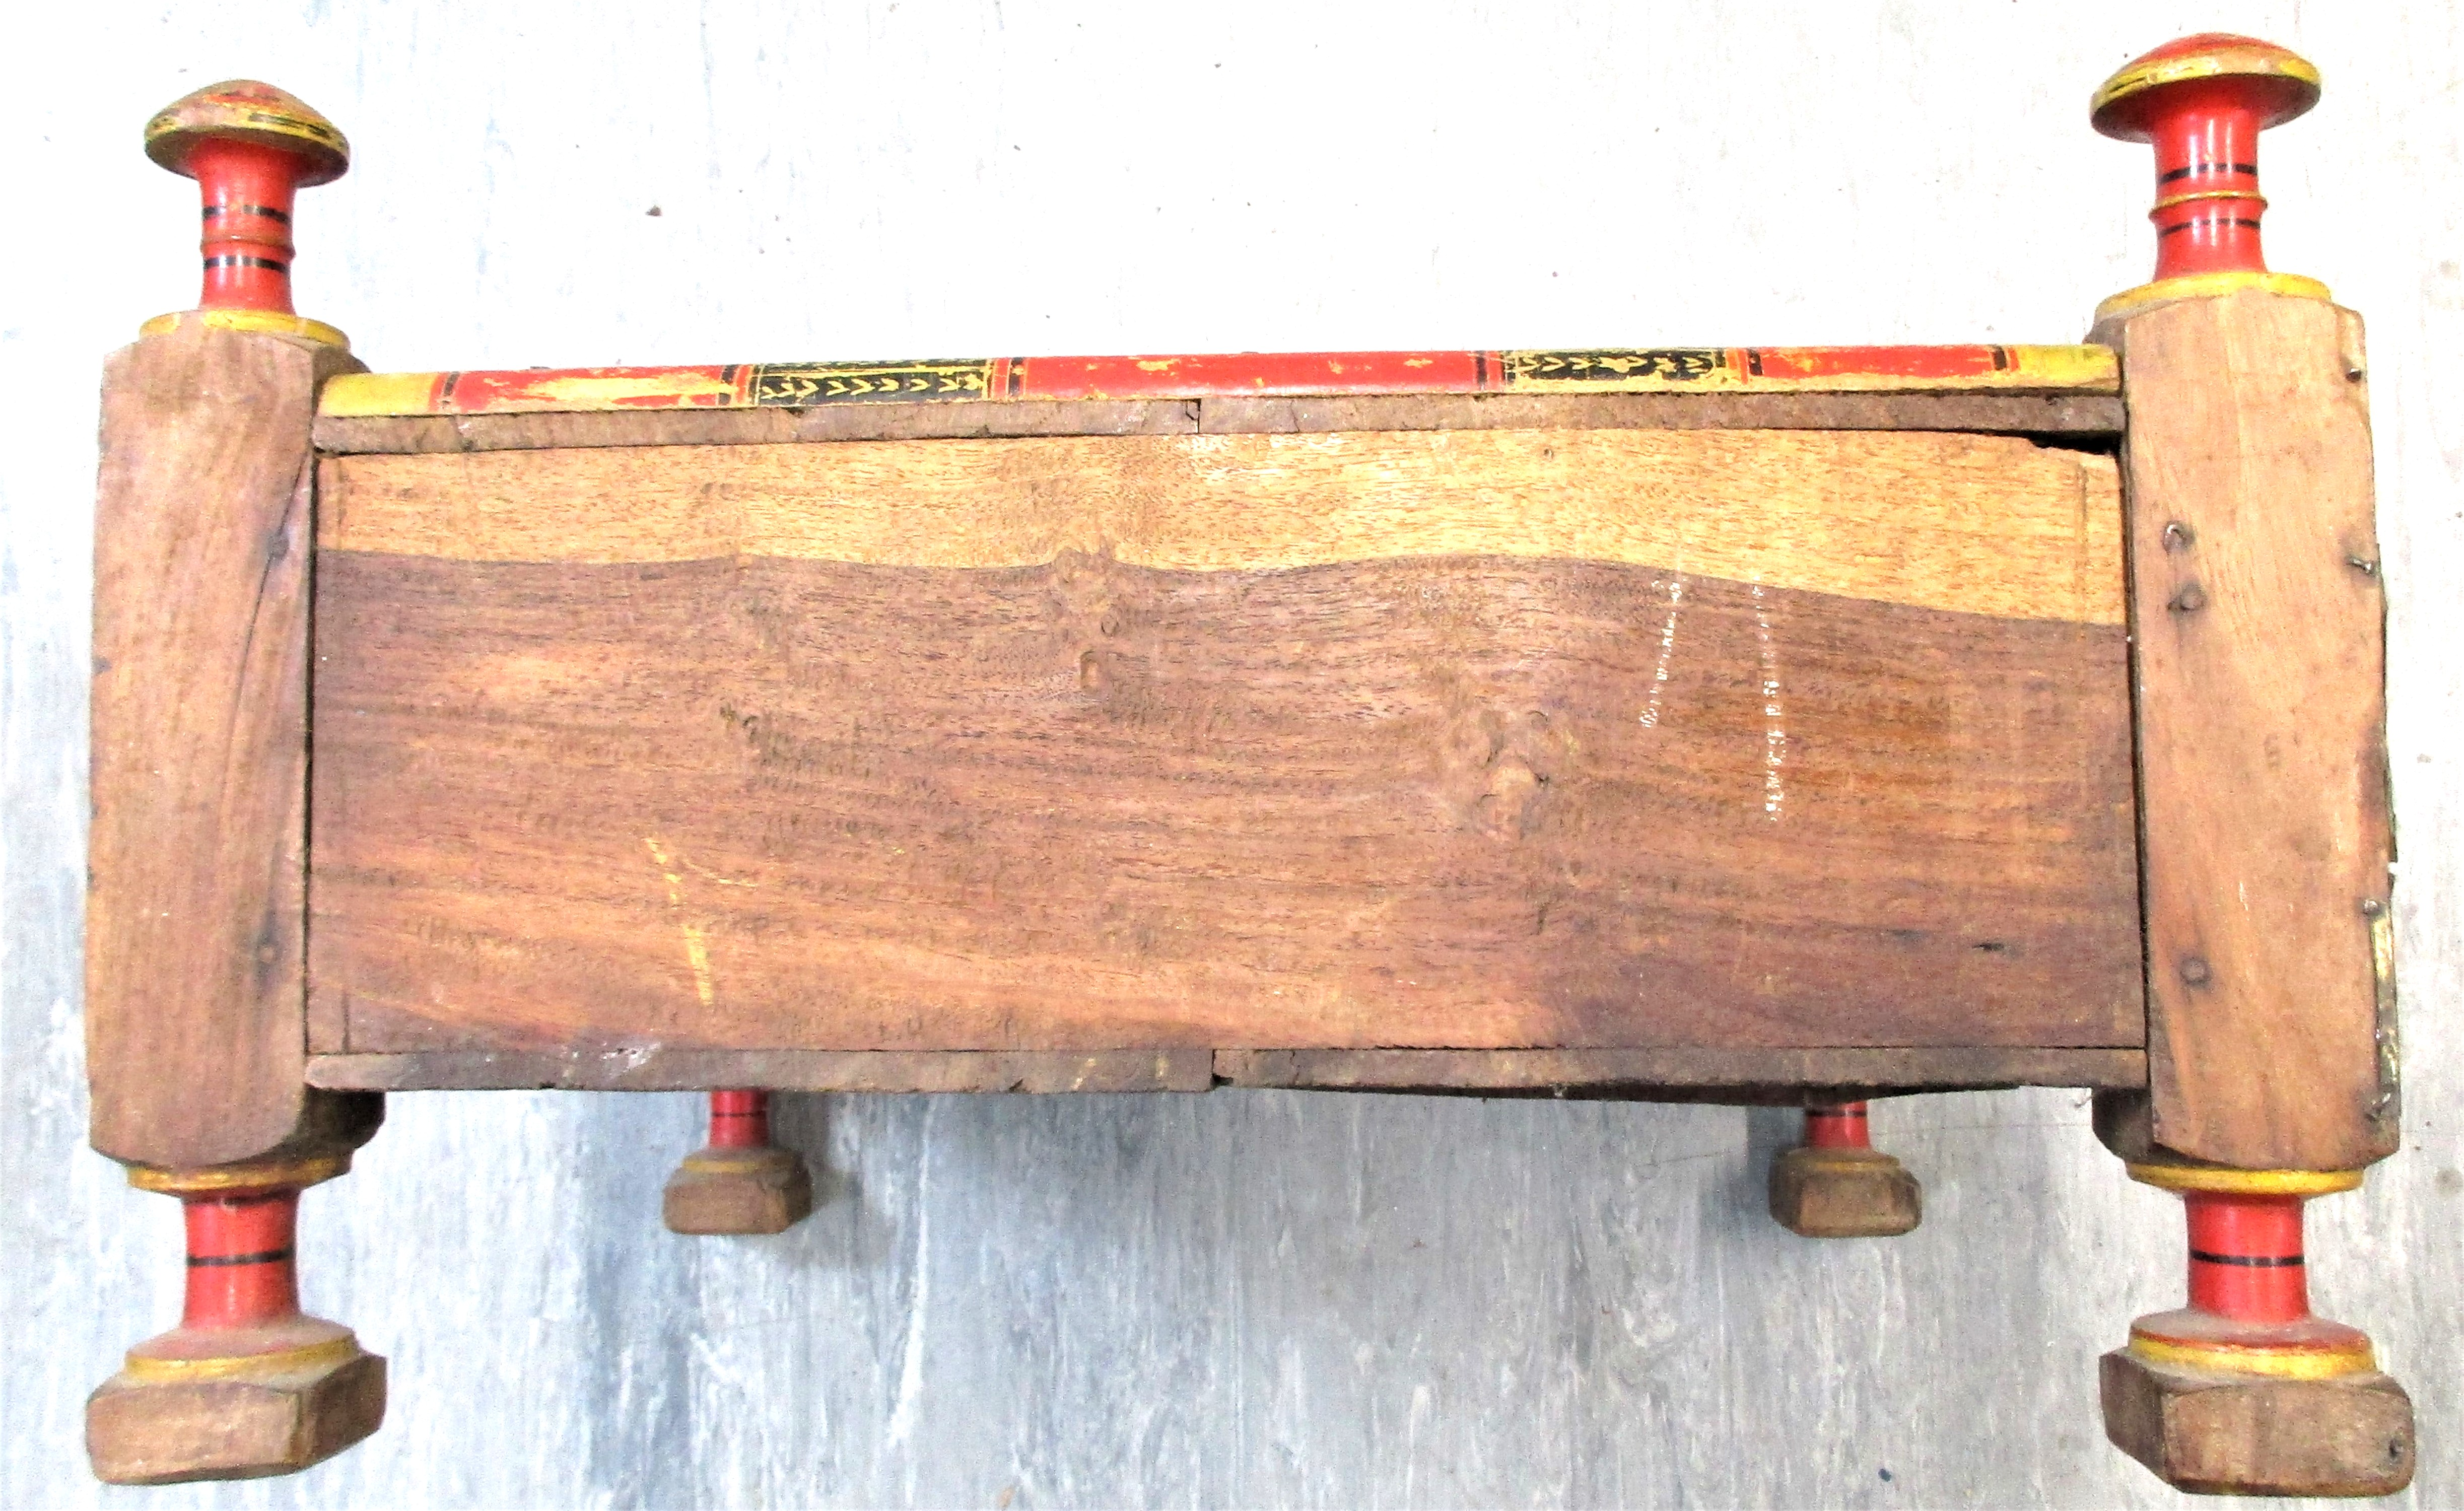 Merchant's table from Jalalabad. This would be used in a market or small shop. Most likely the - Image 4 of 5